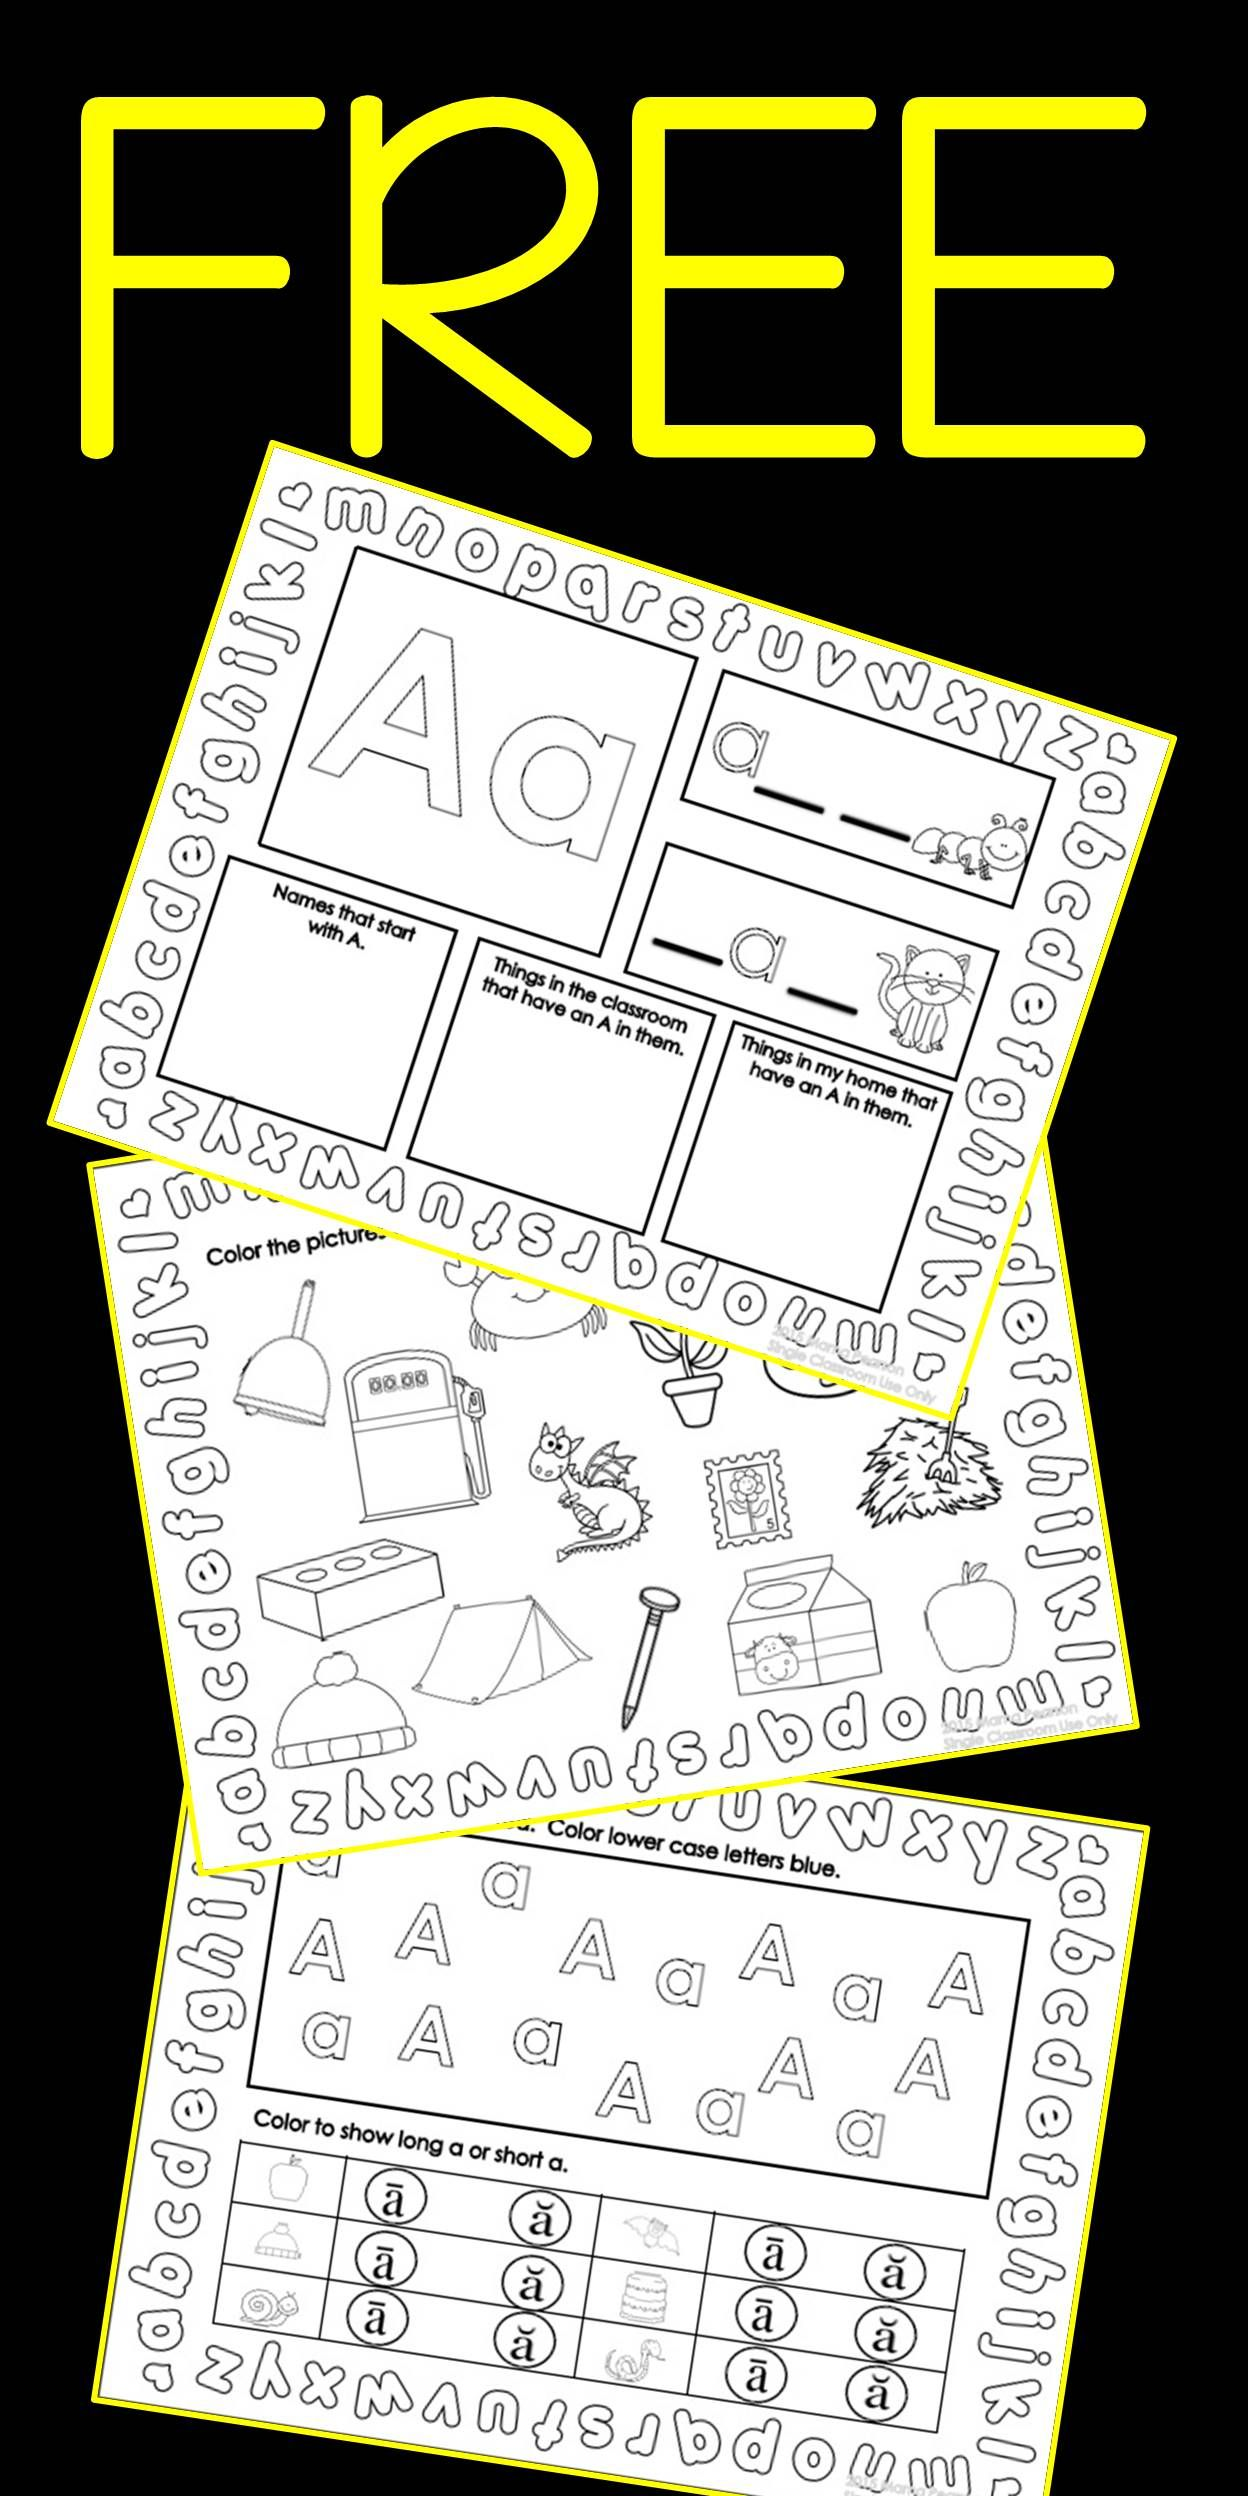 7 Free Pages To Help Your Students Practice Skills With